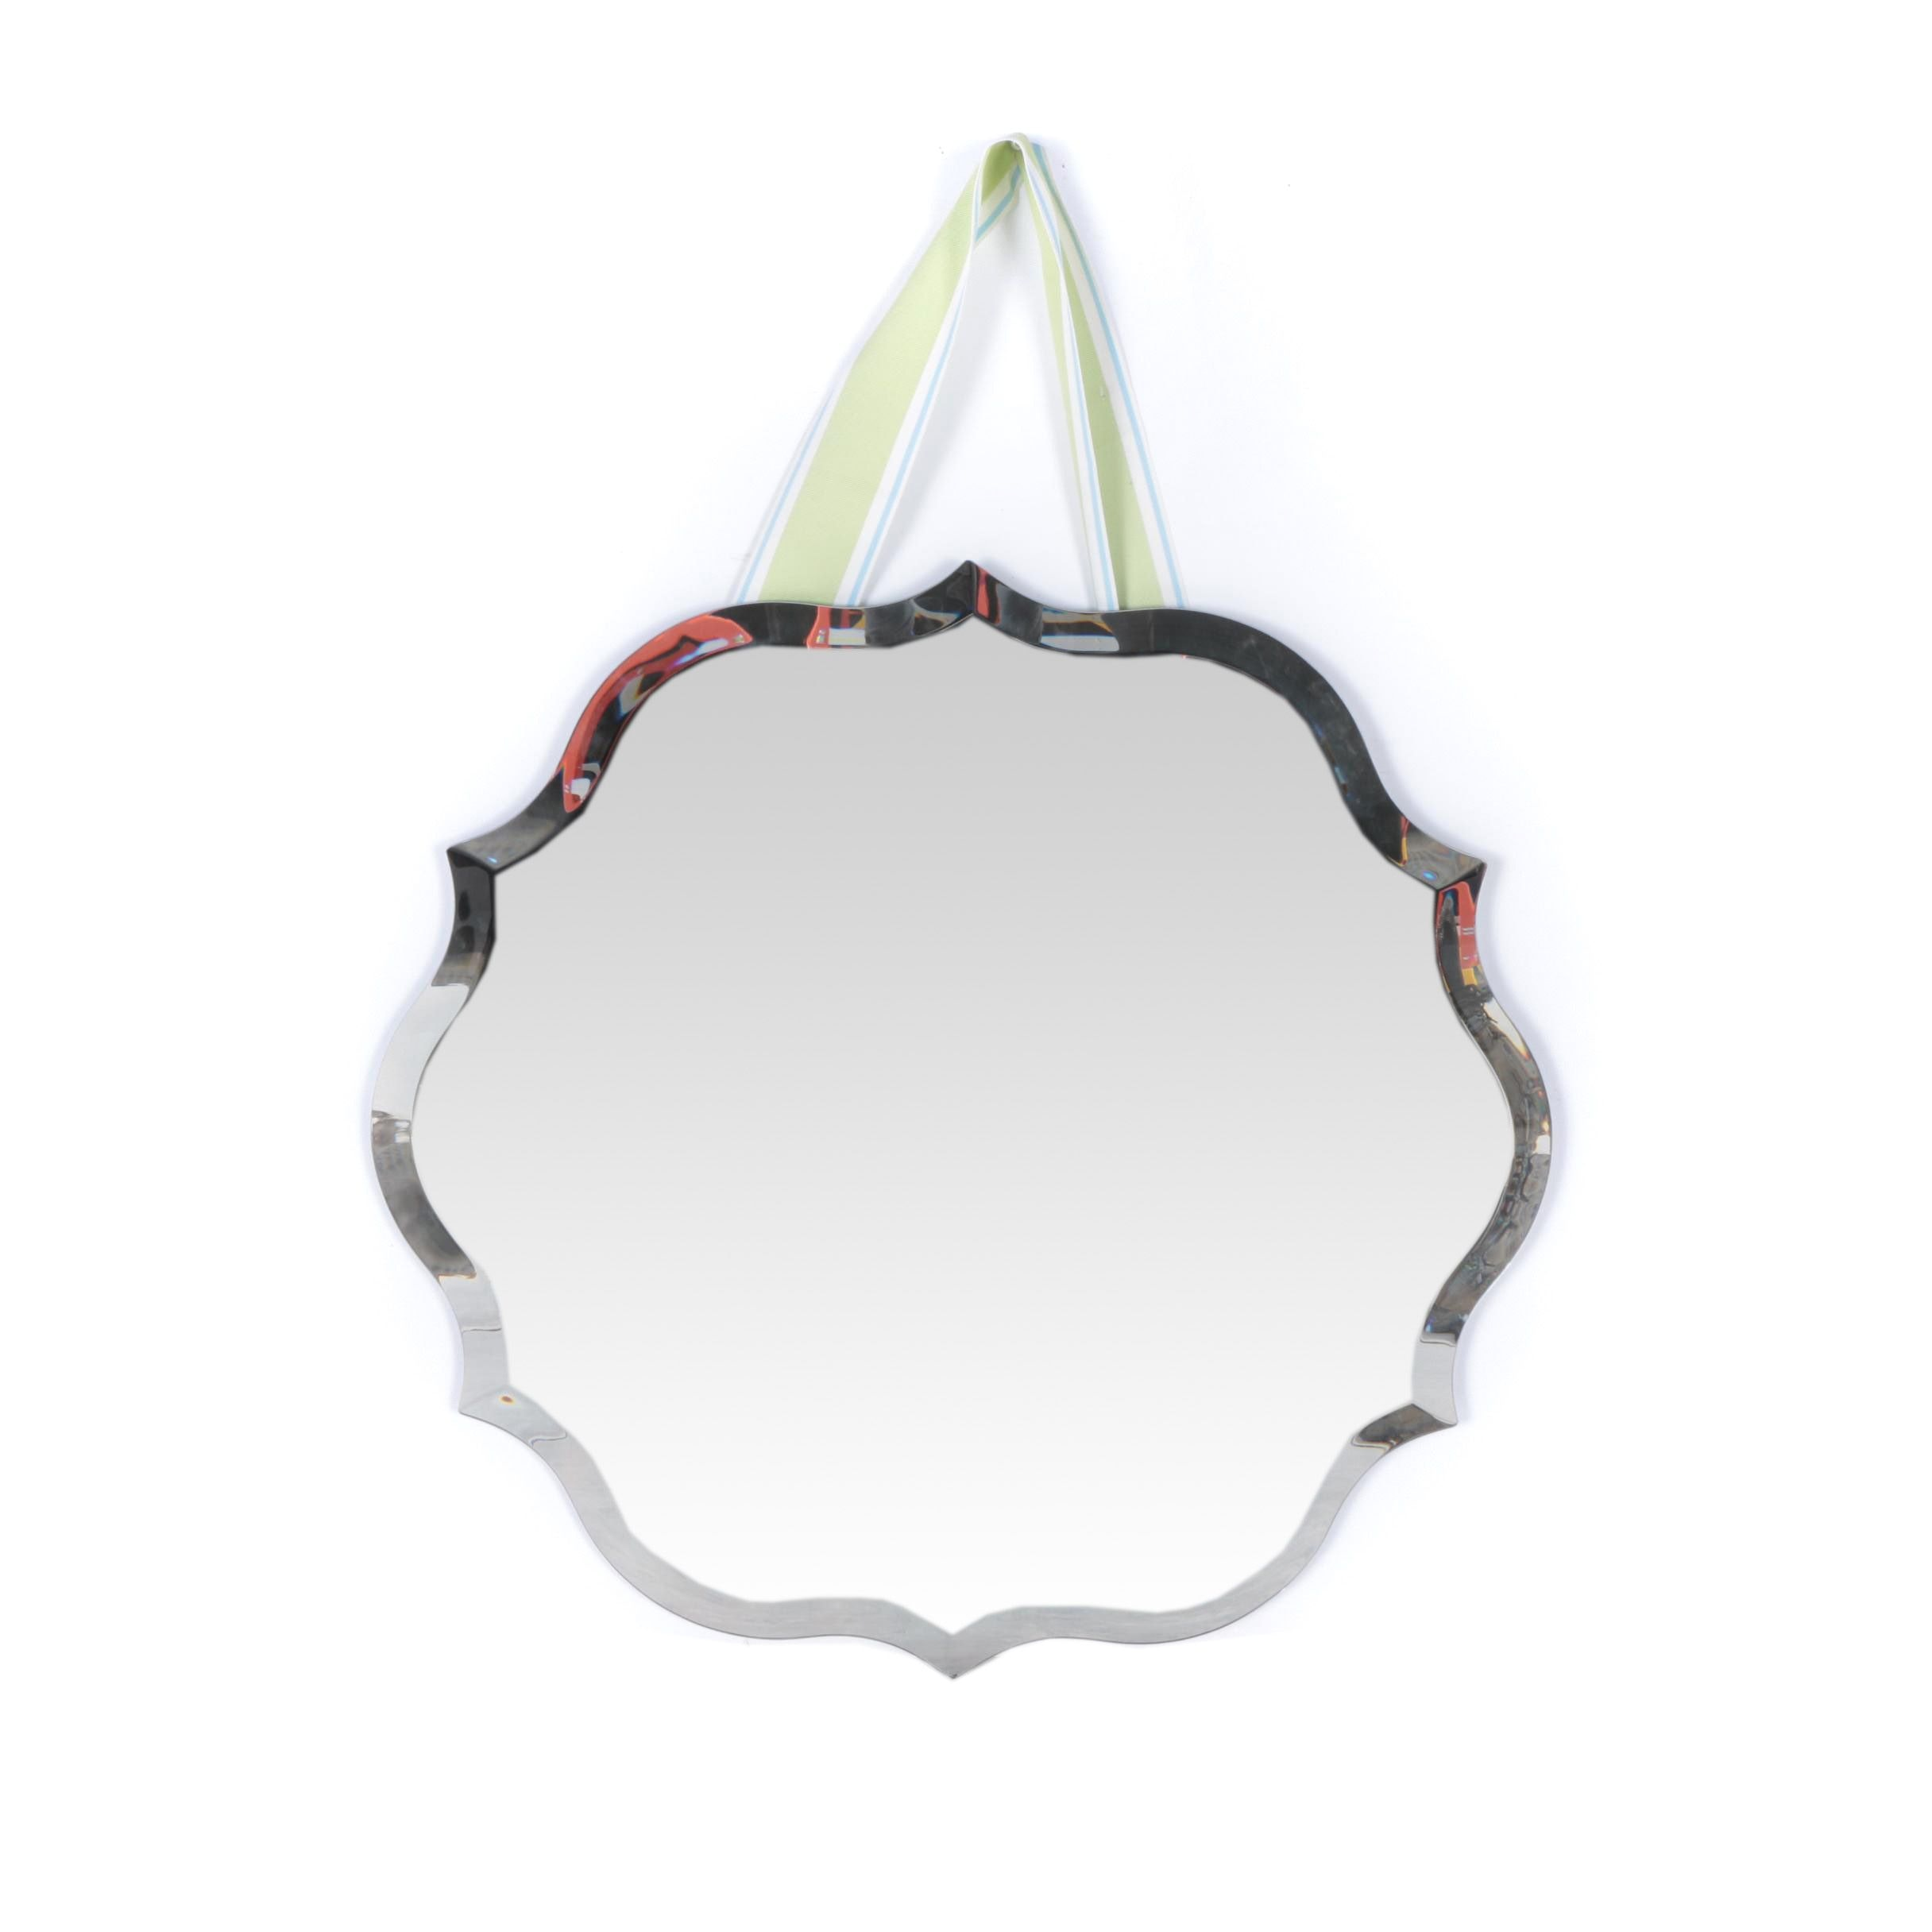 Decorative Mirror with Visible Cloth Hanger